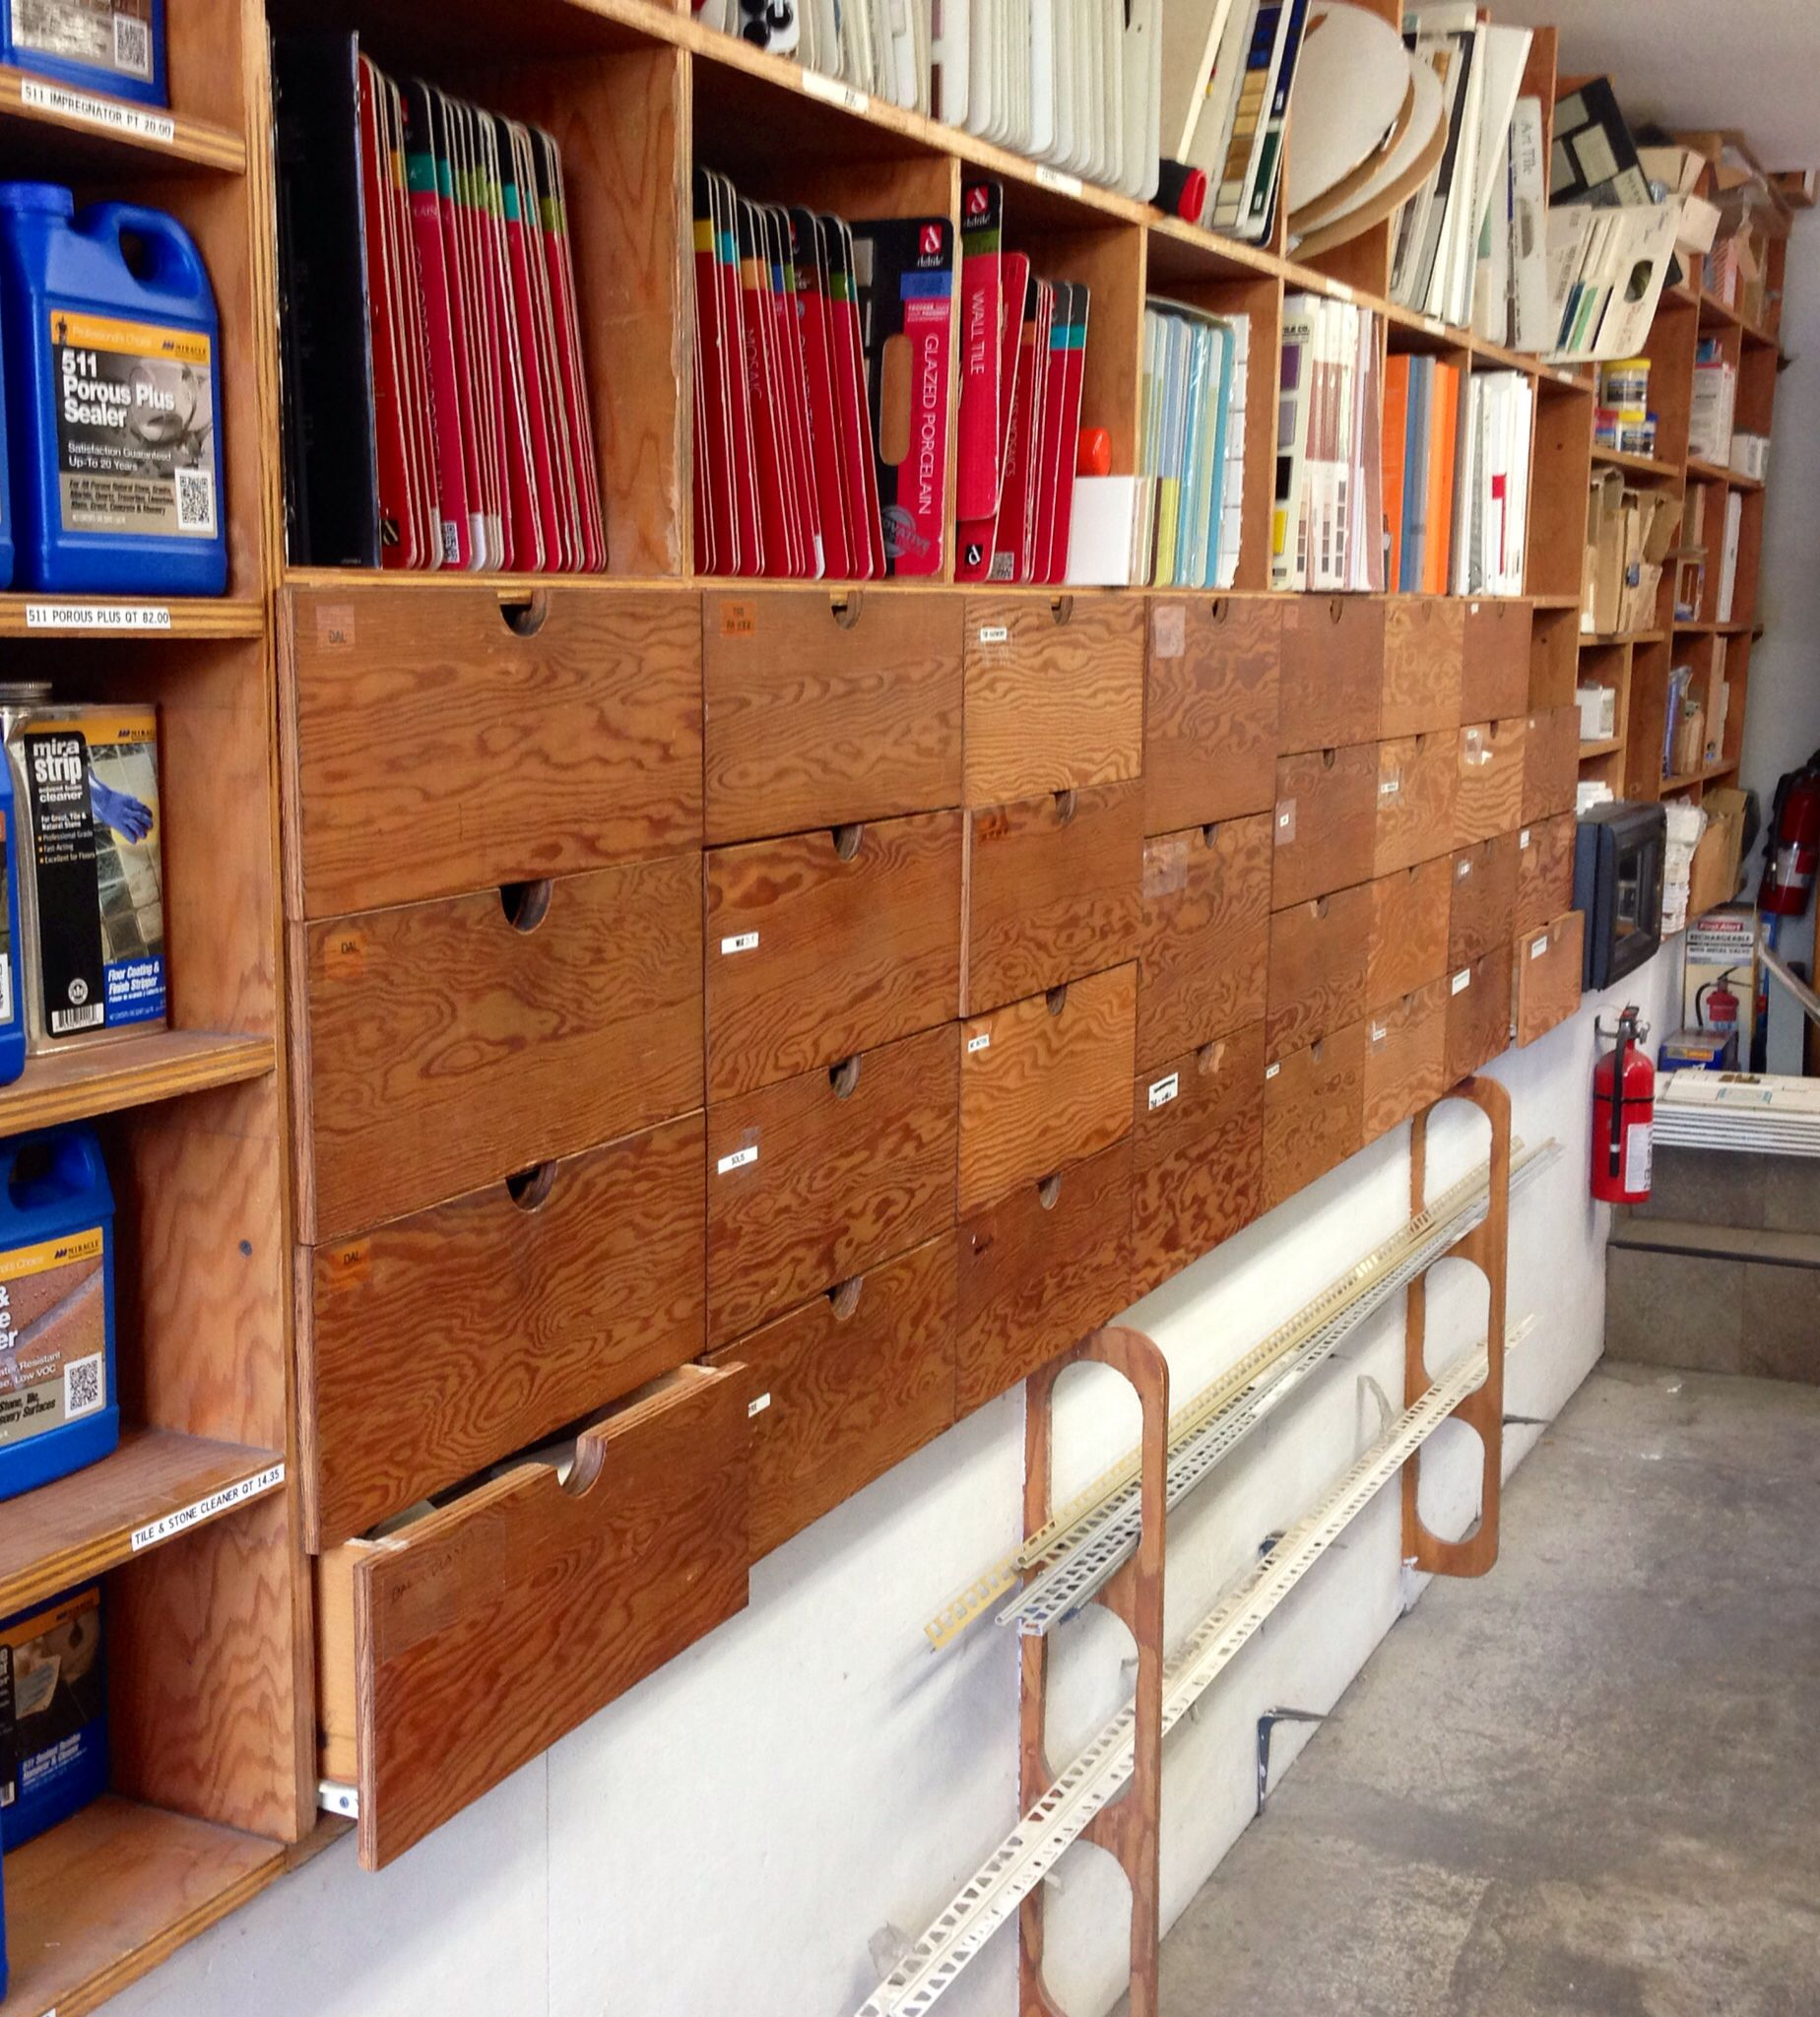 Plywood Garage Cabinet Plans: Fir Plywood Drawers With Cutout Pulls - Art Tile